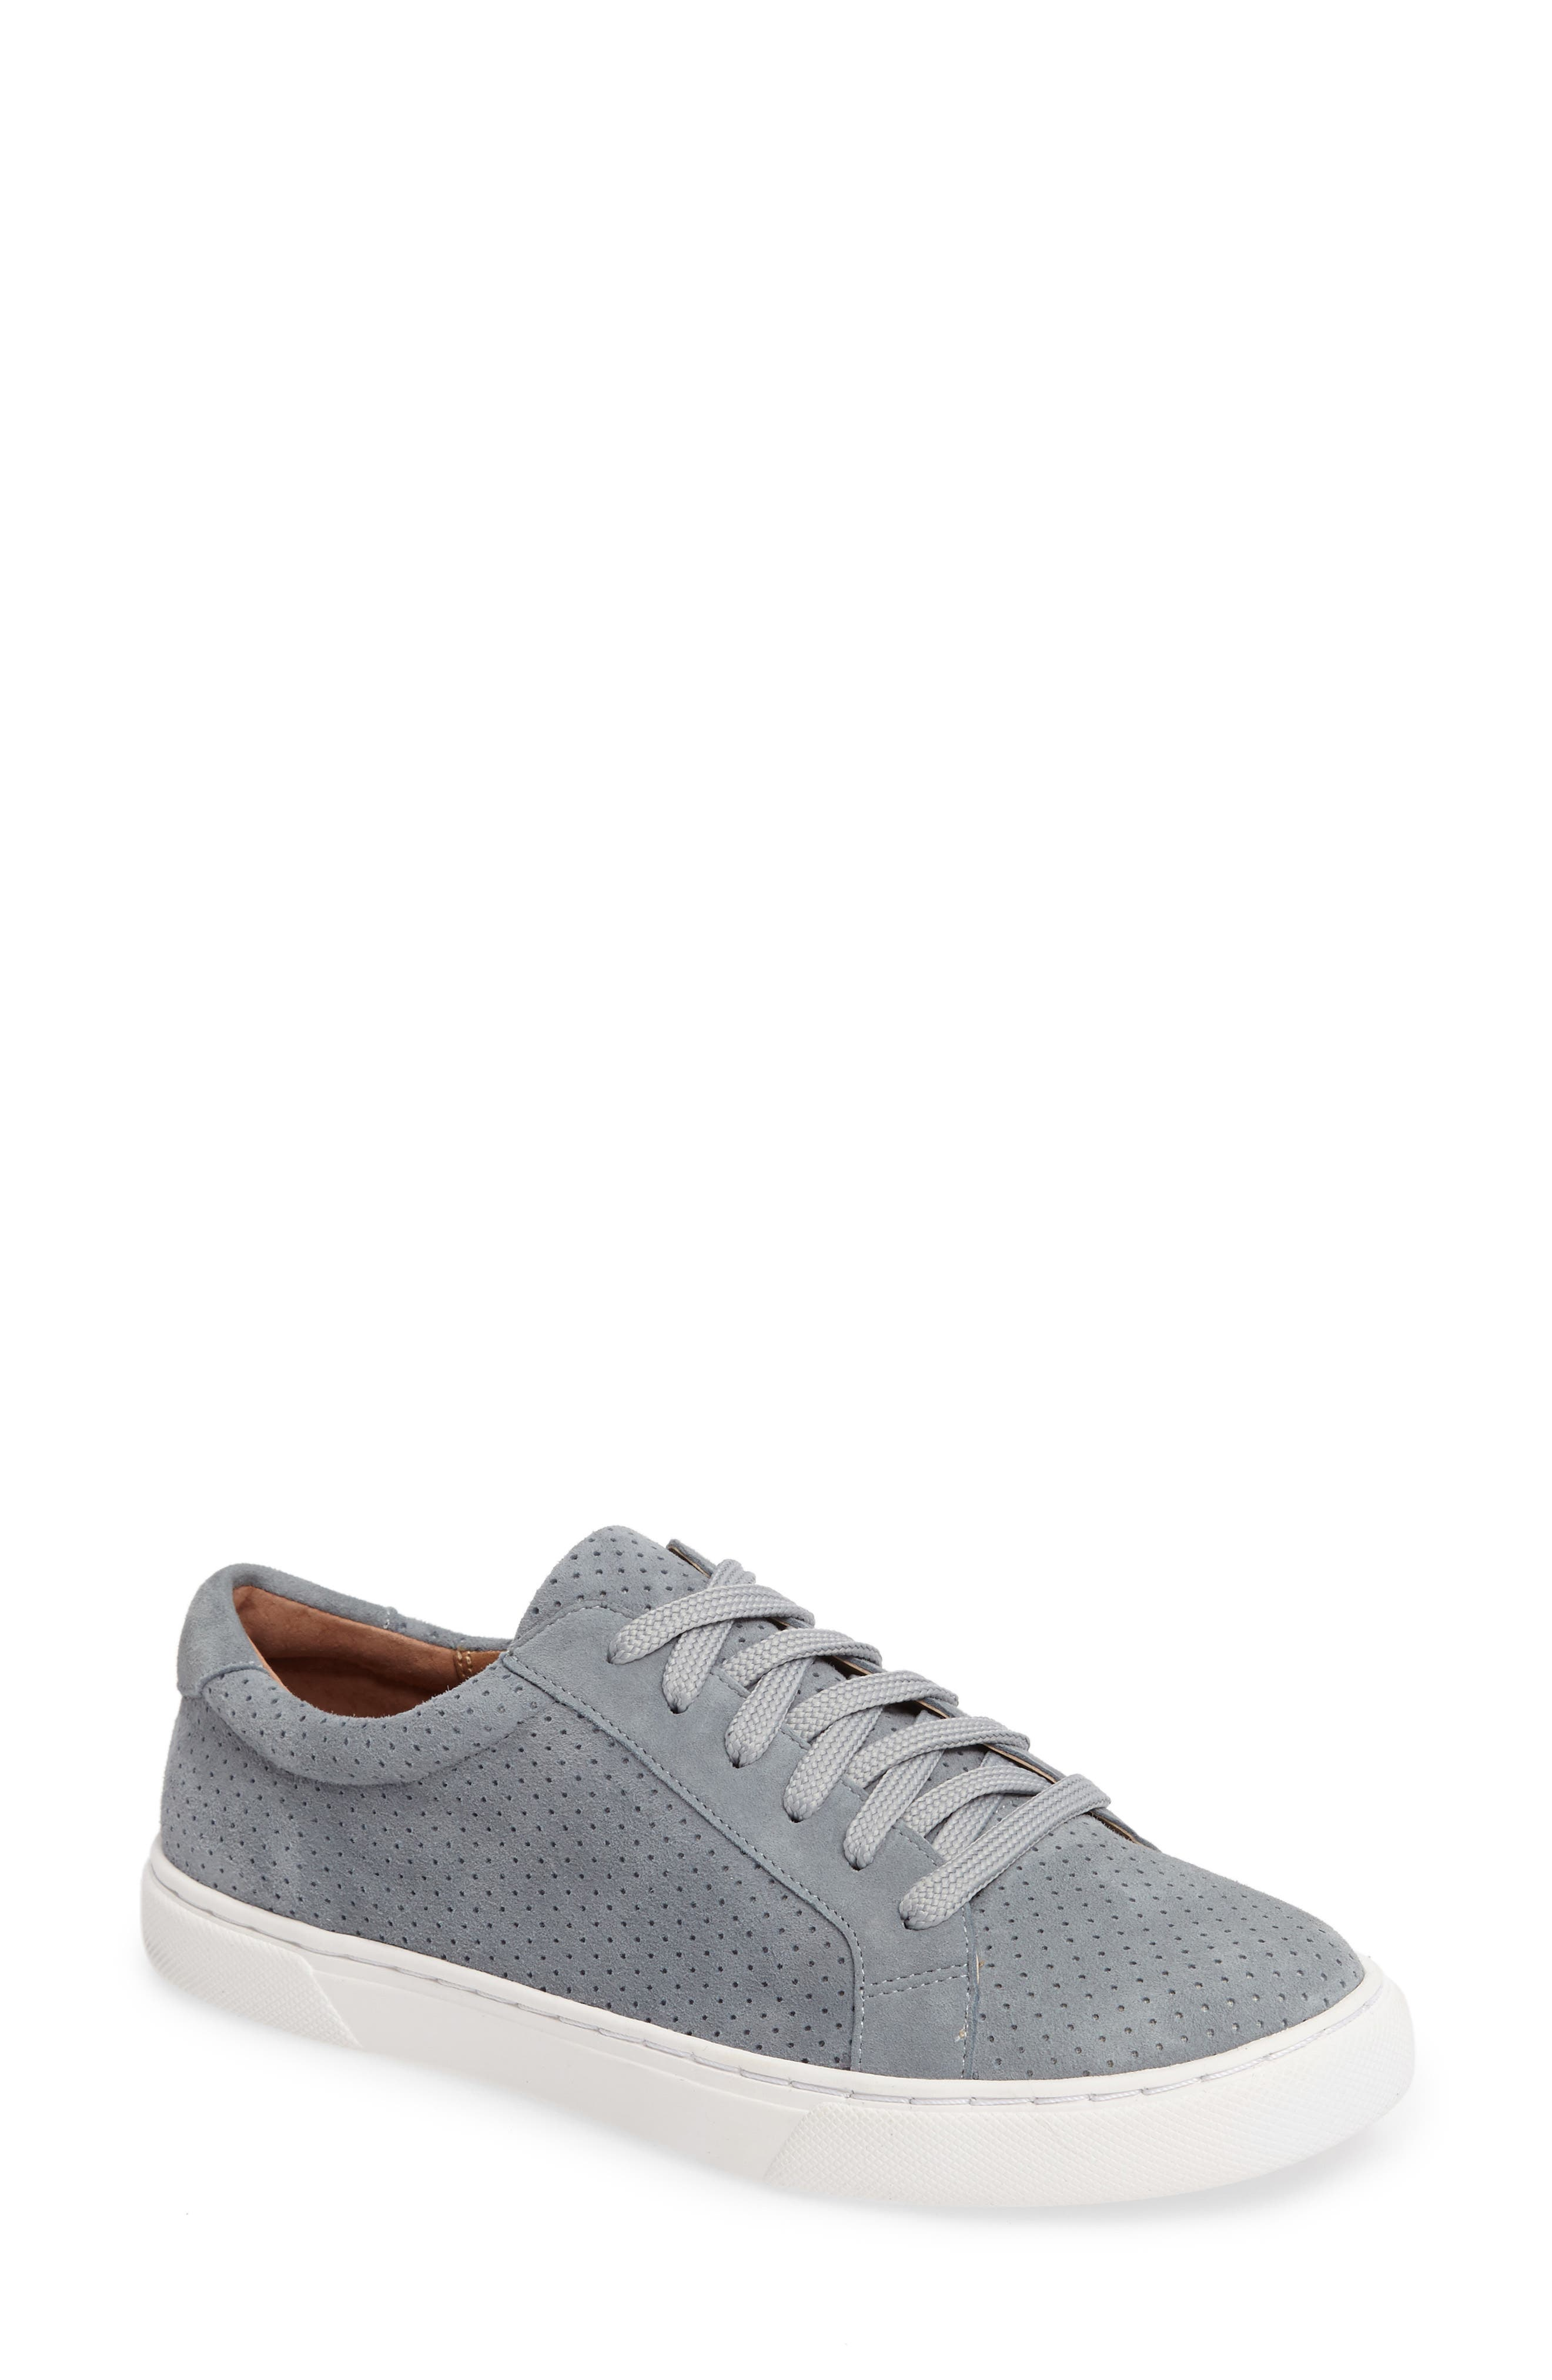 Alternate Image 1 Selected - Caslon® Cassie Perforated Sneaker (Women)